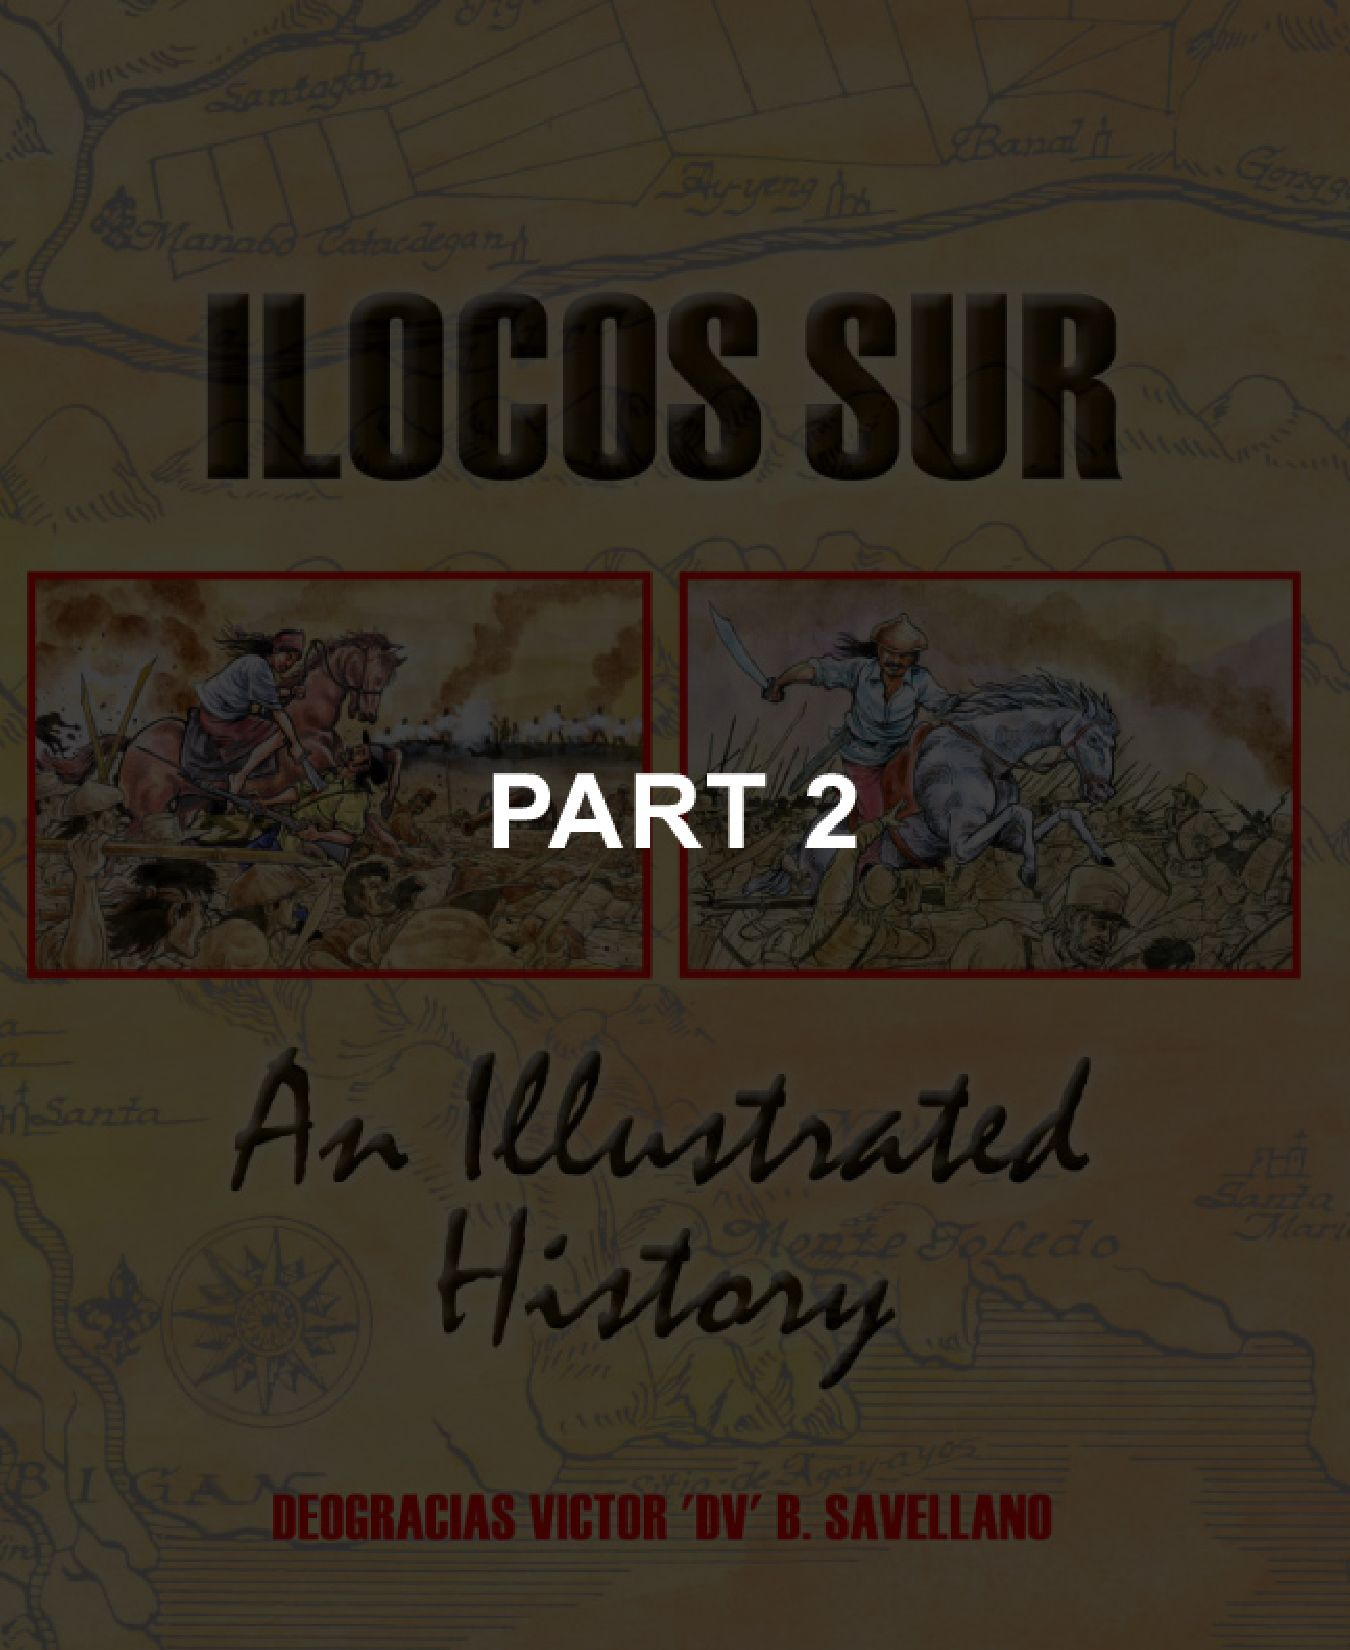 history of ilocos sur History of vigan source: was awarded the old province of ylocos which then composed of the ilocos norte, ilocos sur the city of vigan made a history of having the greatest number of electorates who participated in a plebiscite up to this date.